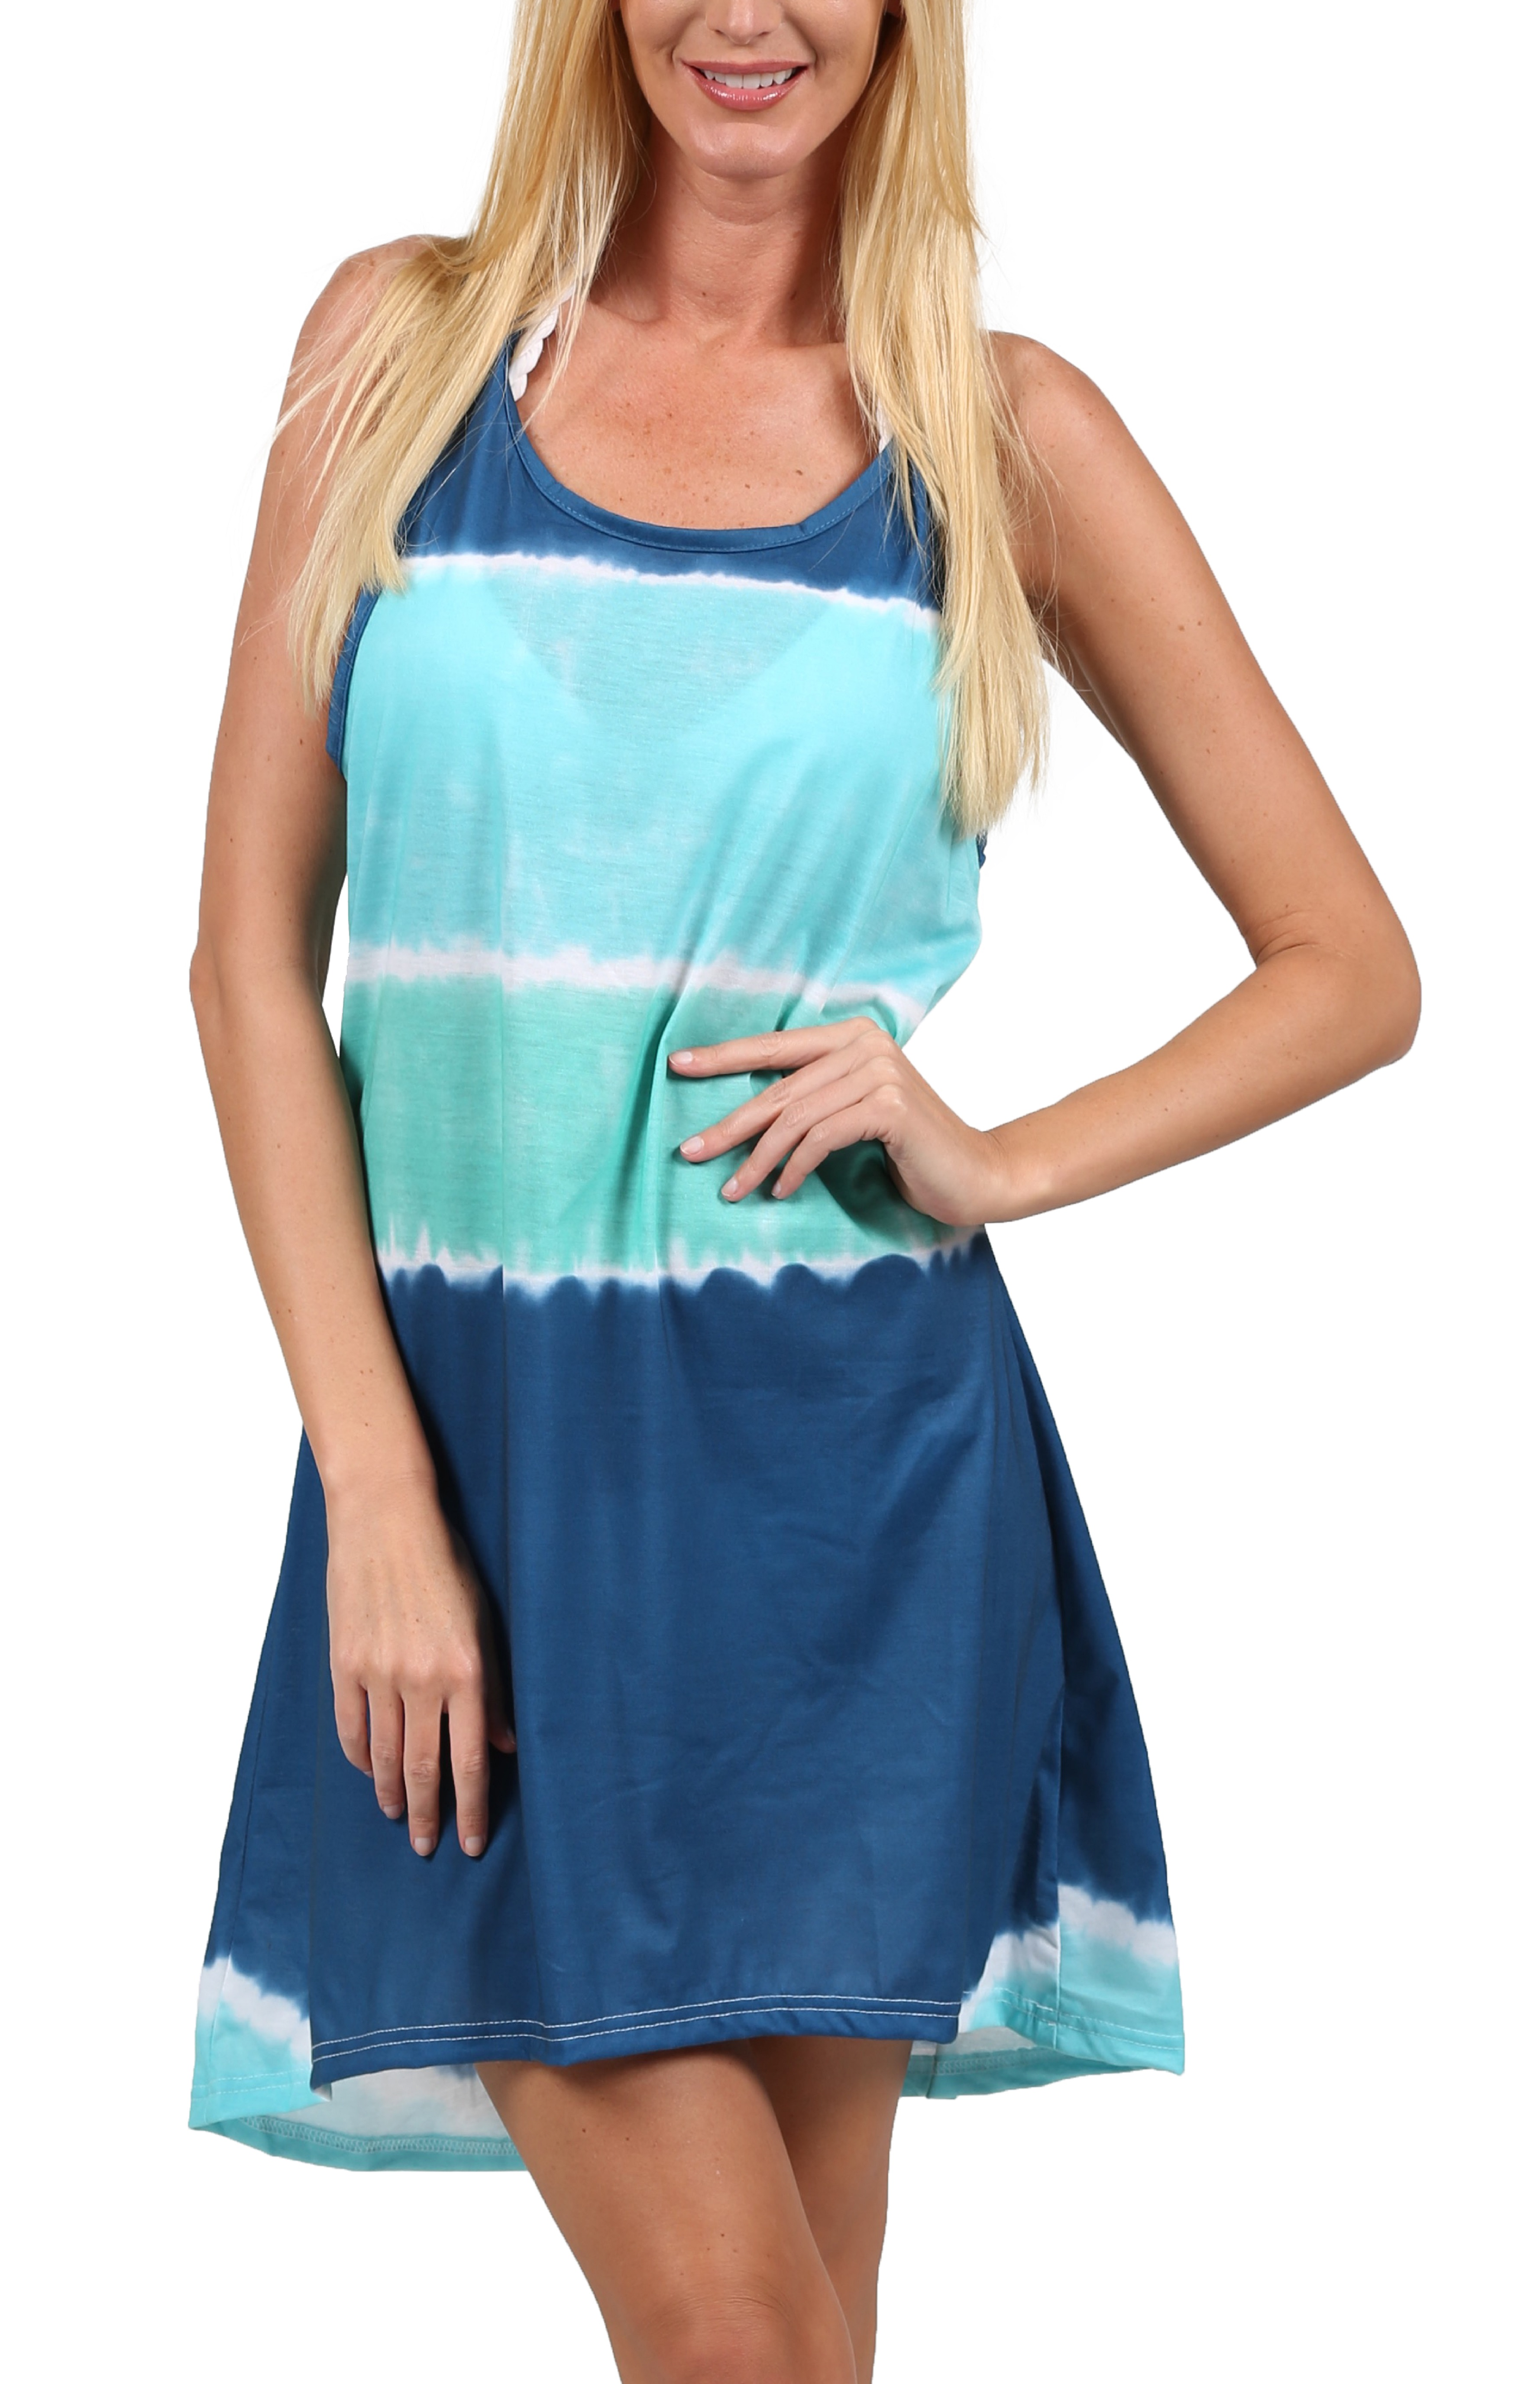 Our collection of casual dresses for women includes drawstring maxi dresses, swing dresses, tank dresses, and easy shift dresses, which all have an effortless feel that works for informal occasions. If you do prefer a fitted shape, choose an easy style like a jersey t-shirt dress.